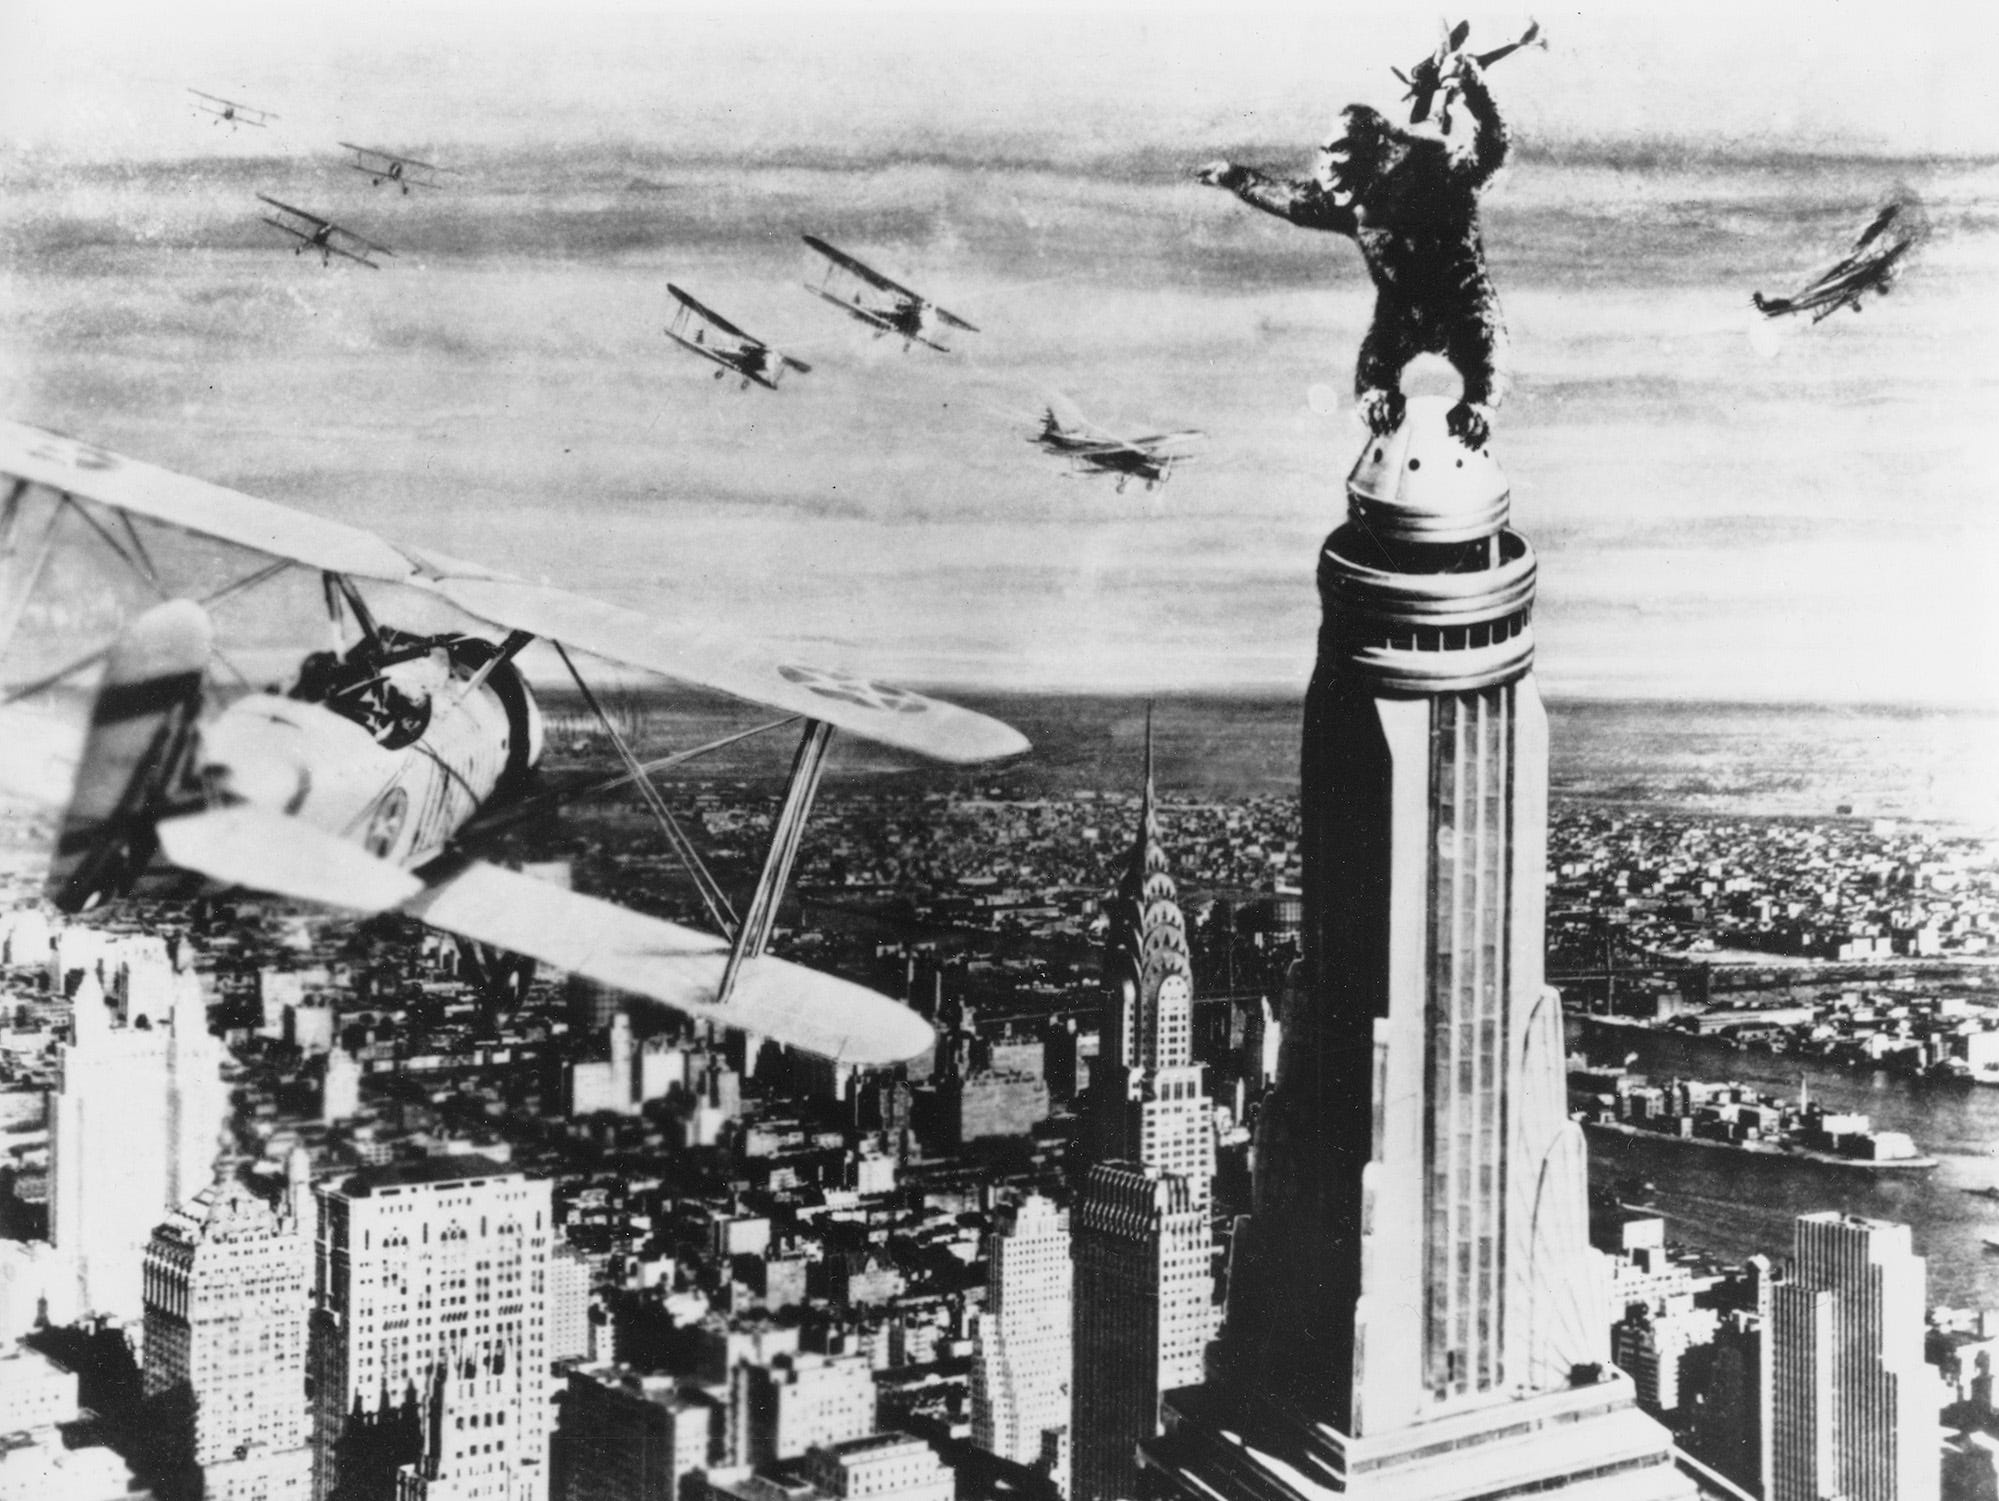 """King Kong stands atop New York's Empire State Building as he holds an airplane during an attack by fighter planes in a scene from the 1933 film """"King Kong.""""  (AP Photo)"""